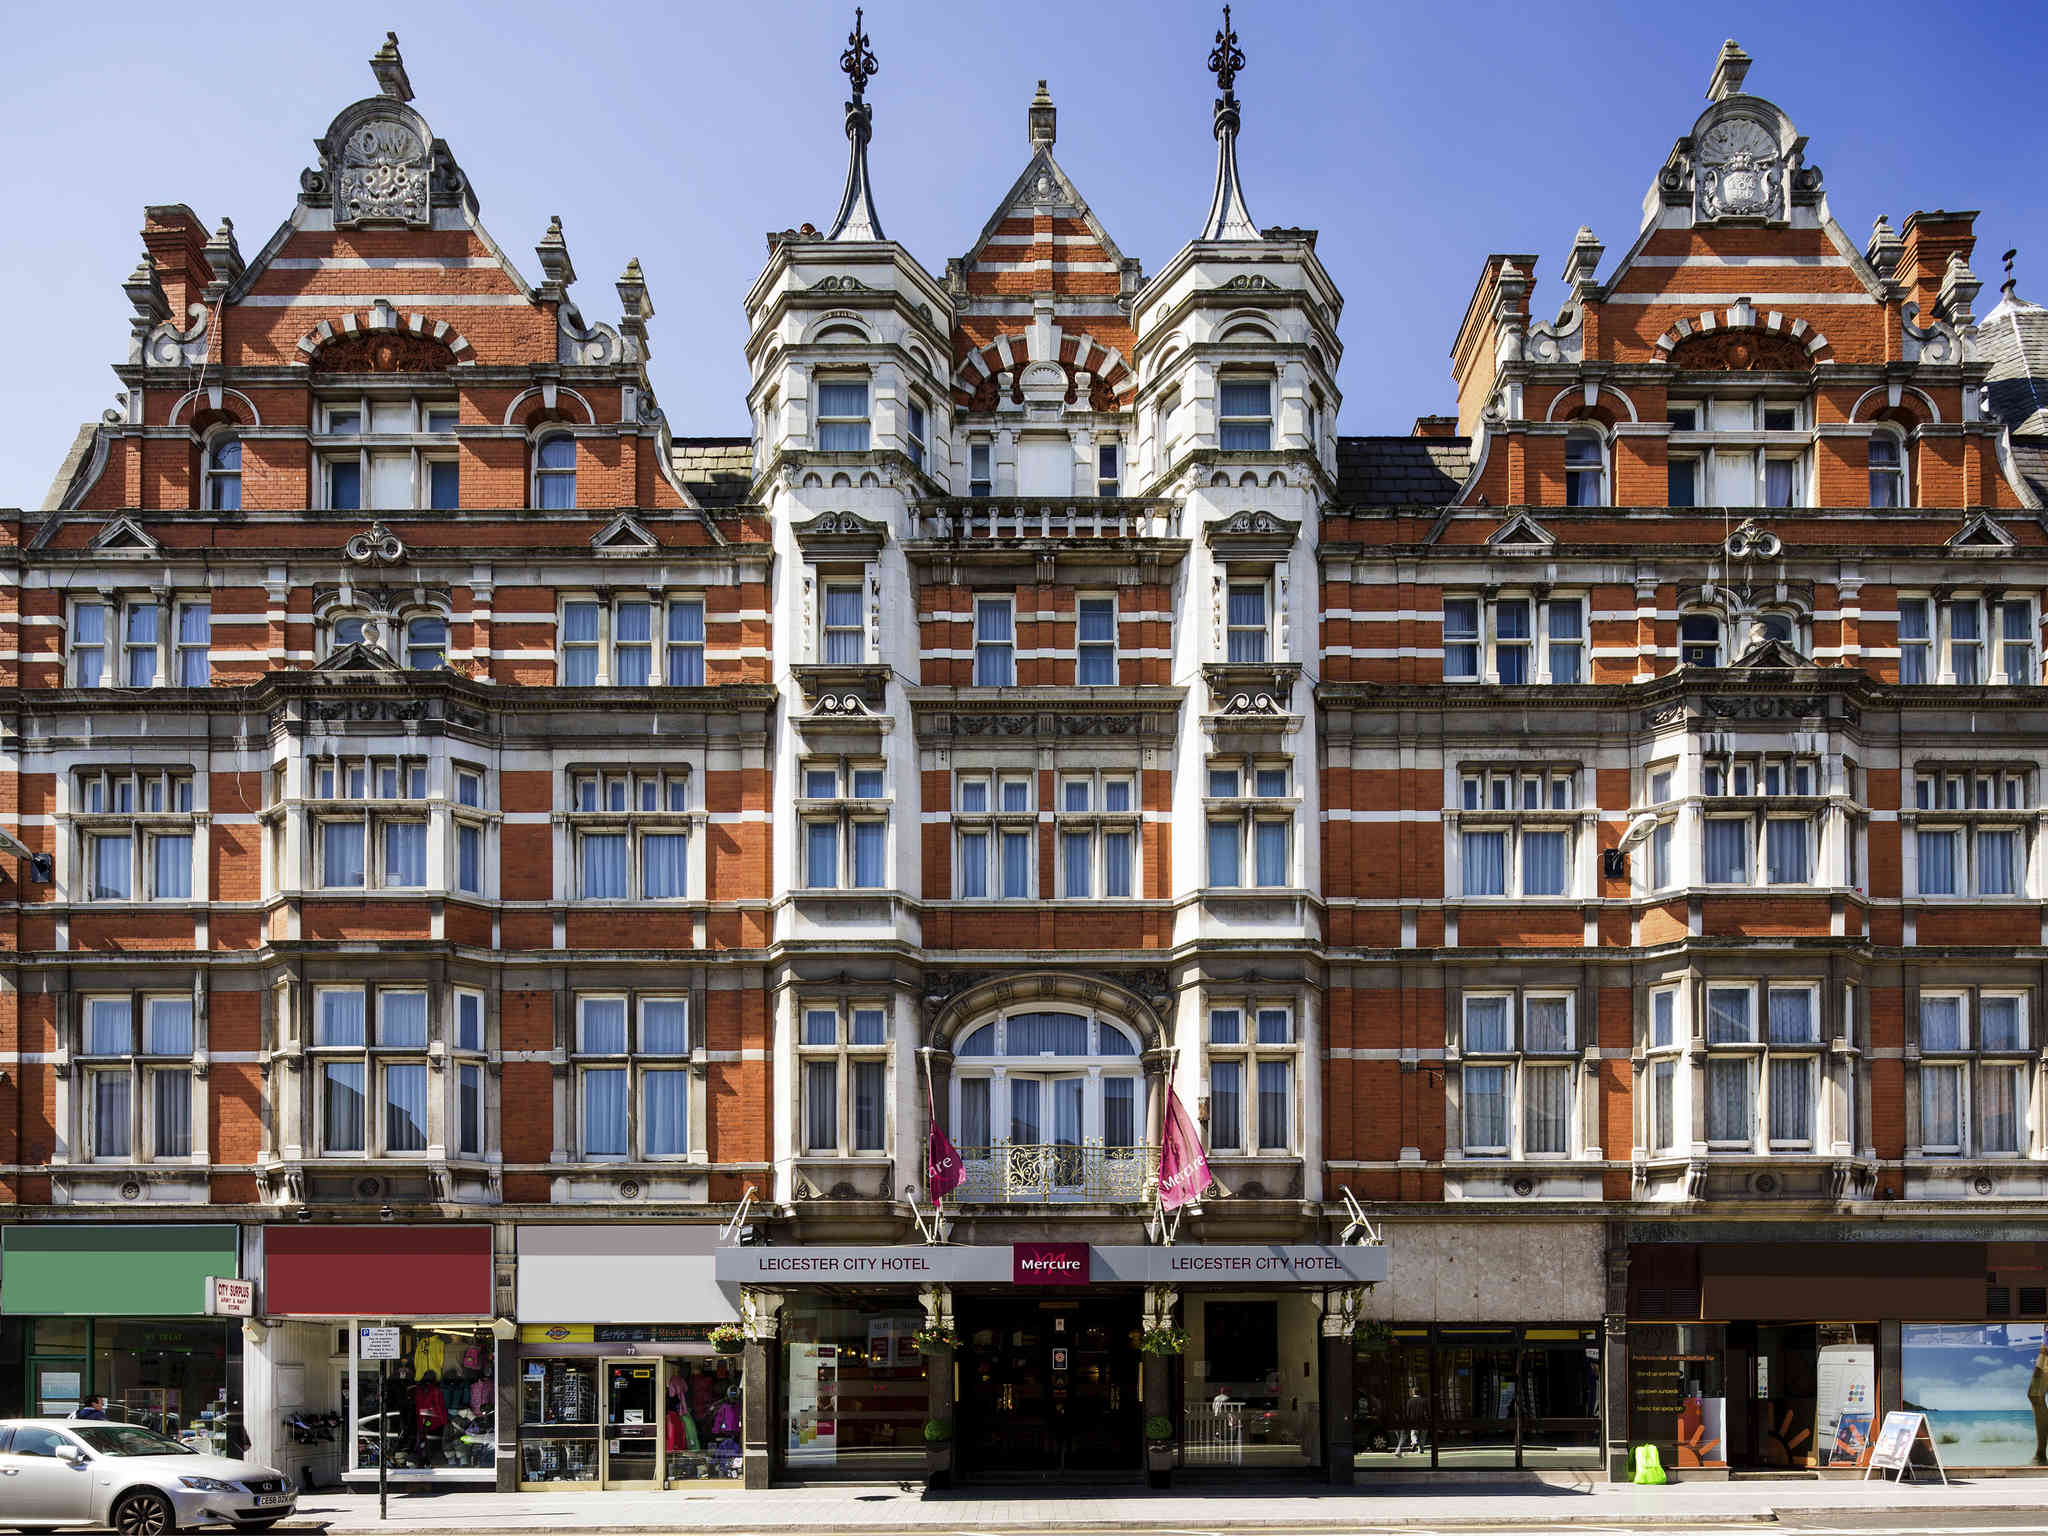 Otel – Mercure Leicester The Grand Hotel